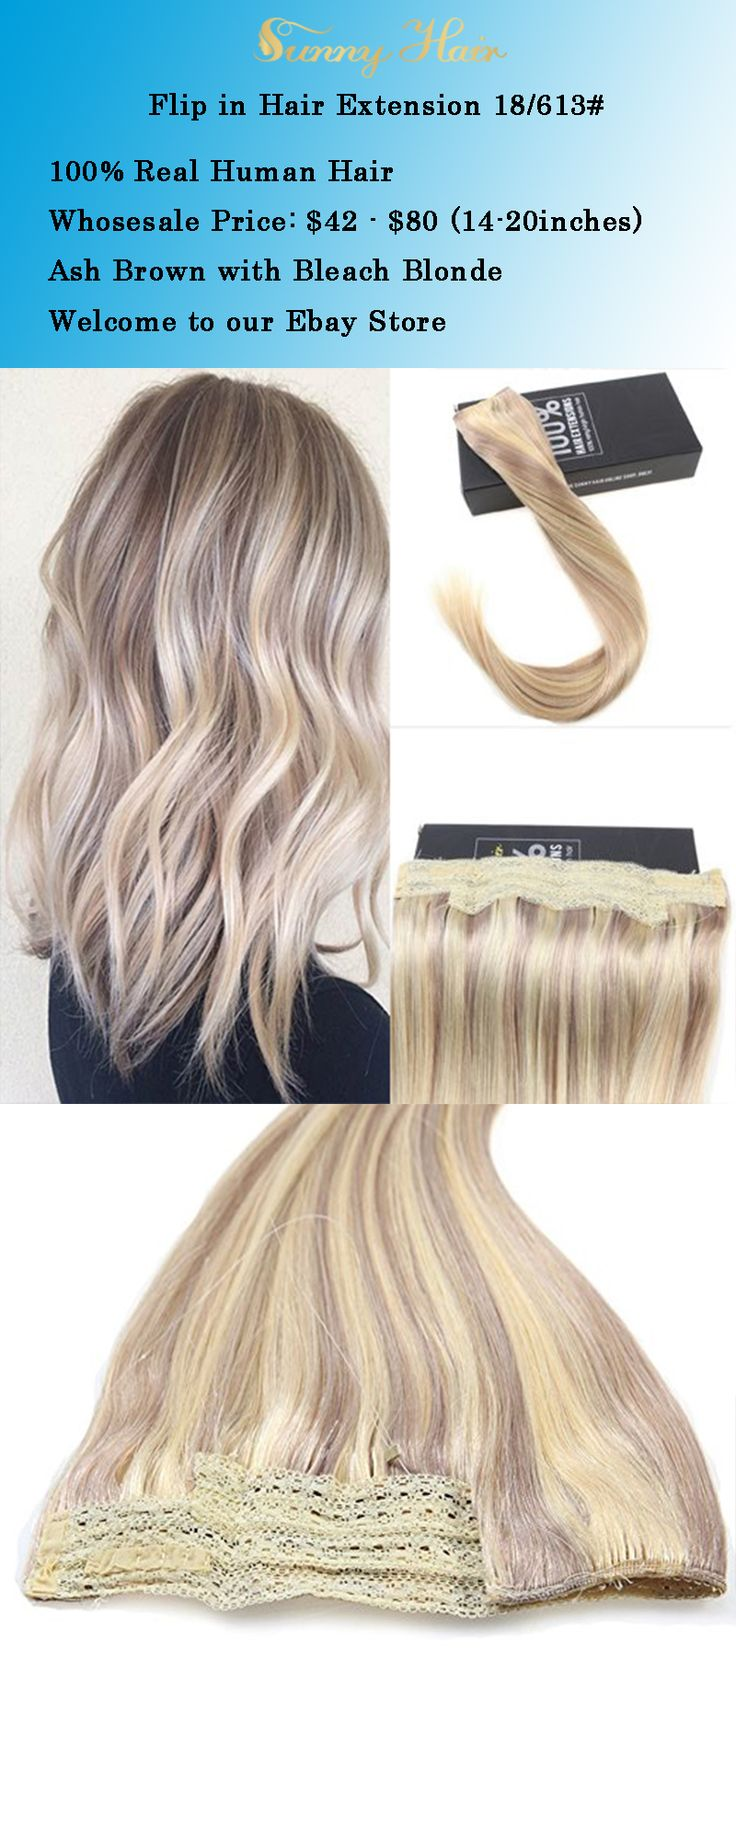 Sunny Hair extension, Ash blonde with Caramel Blonde hair, Flip in hair extensions, halo Wire Hair